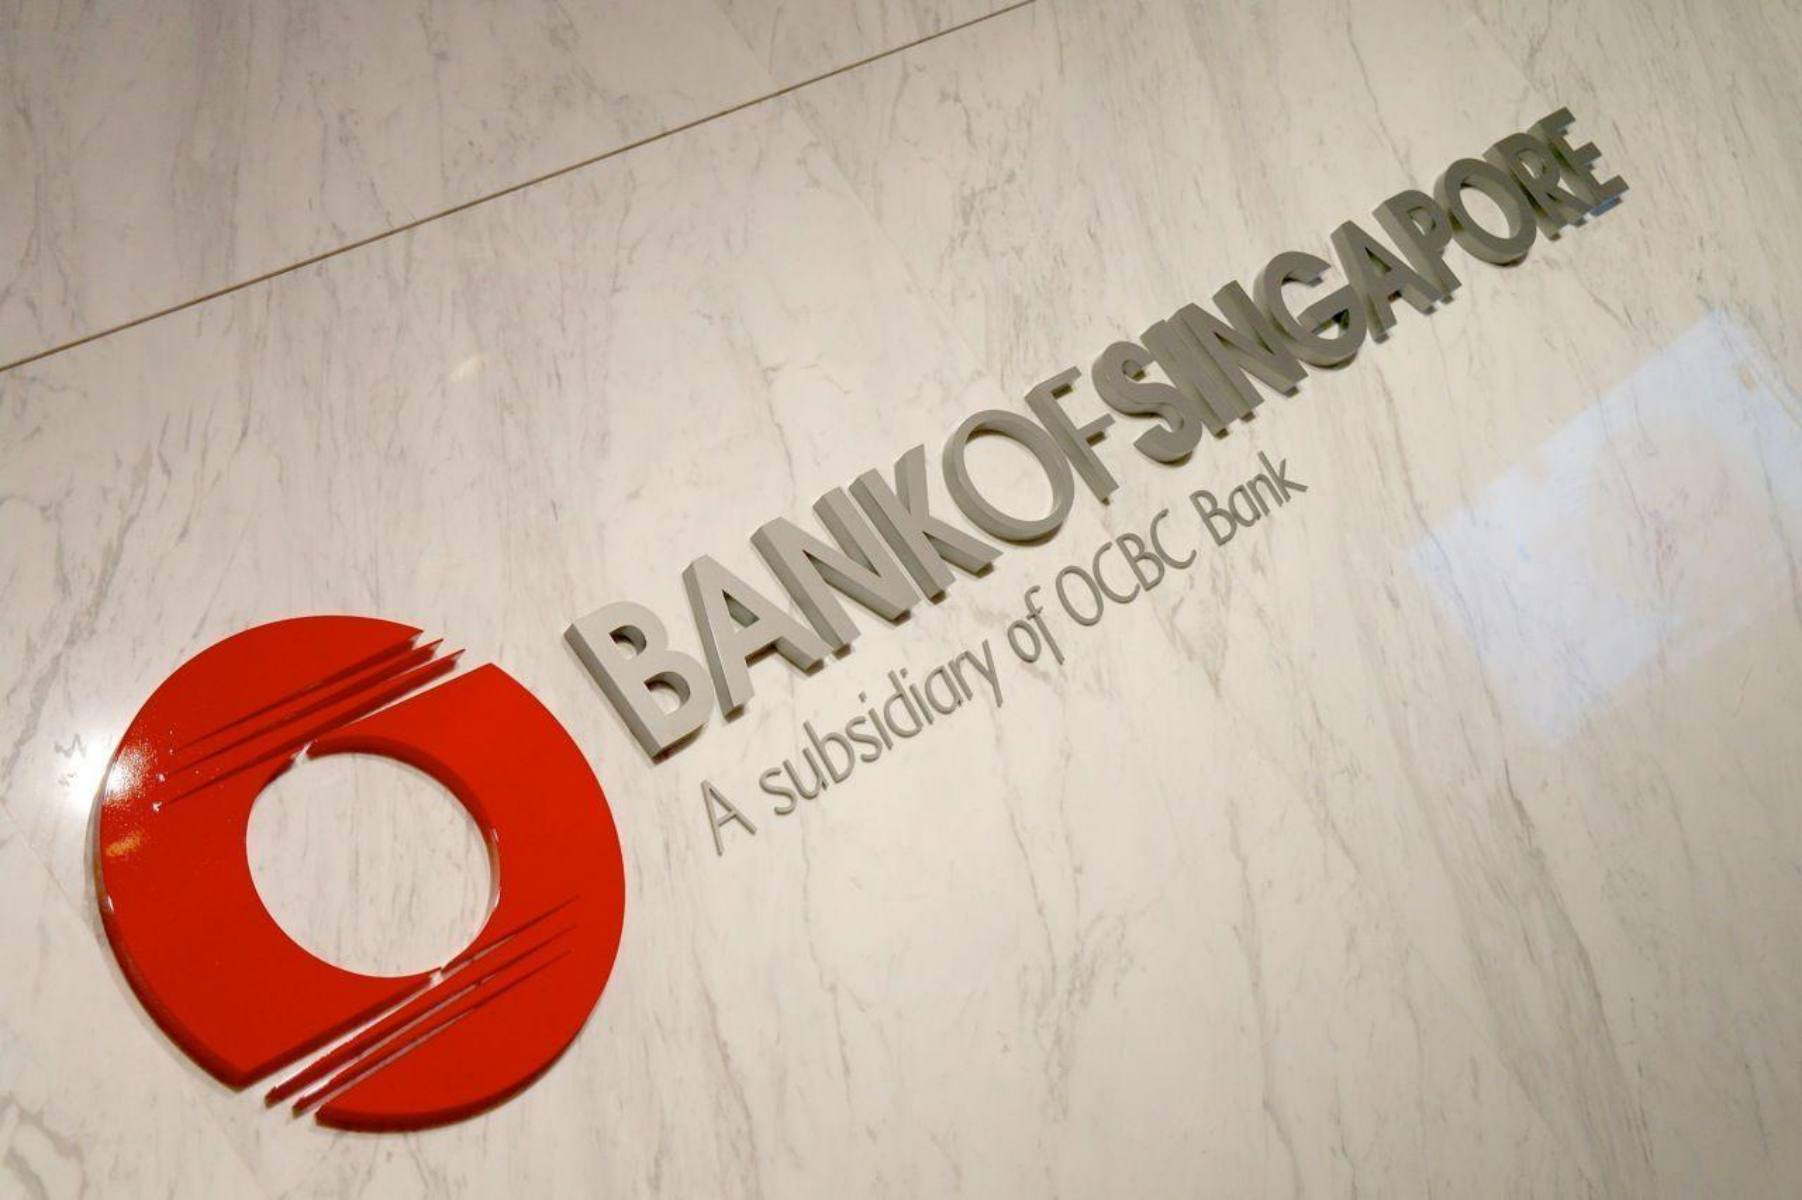 Bank Of Singapore Looks To Expand Family Business Offices